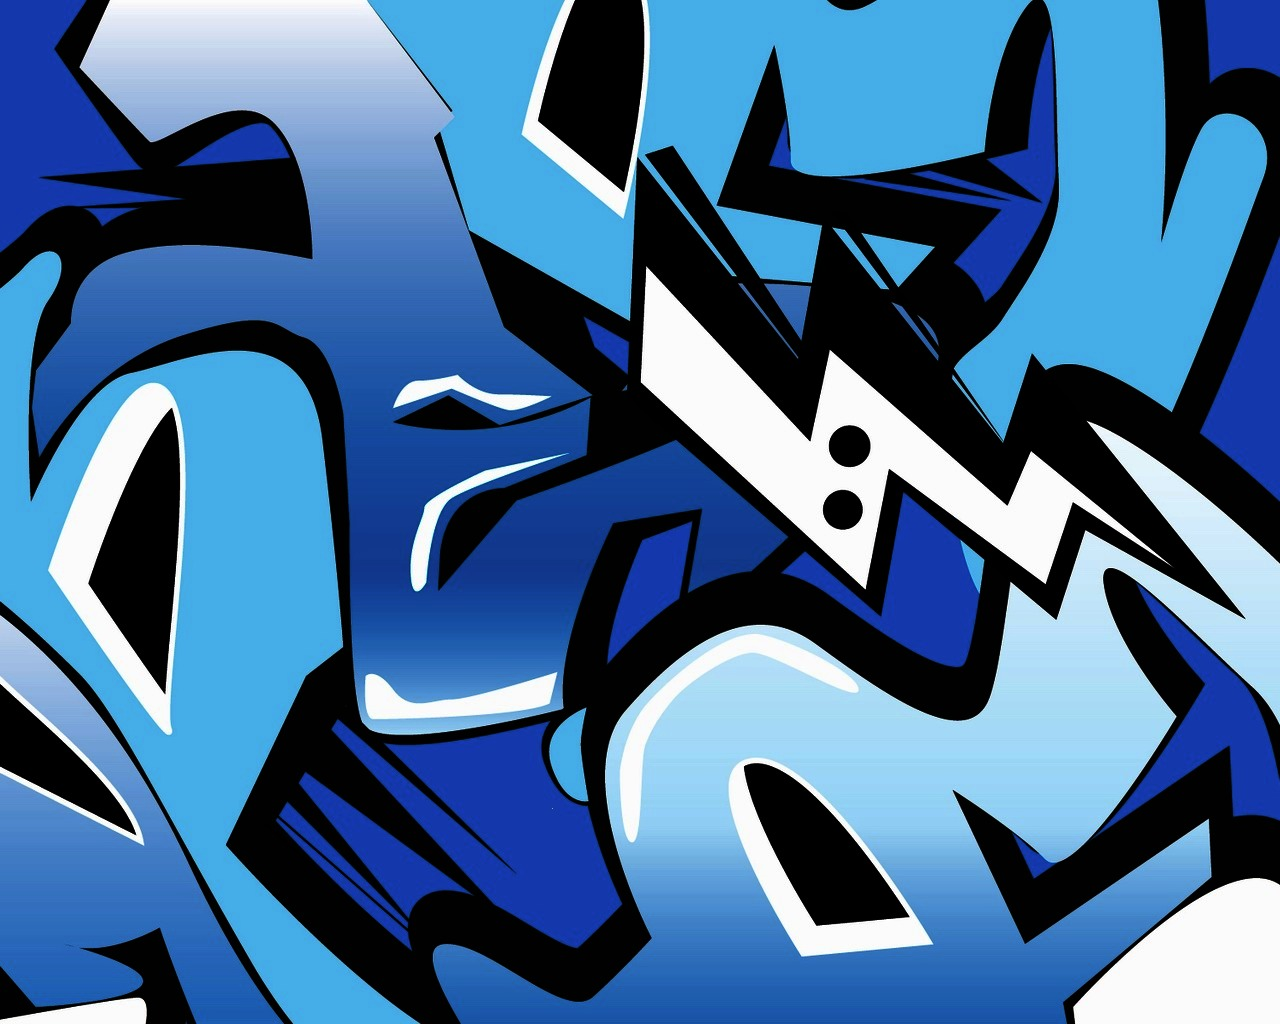 Graffiti Whatsapp Wallpaper: Papel De Parede Graffiti Azul Wallpaper Para Download No